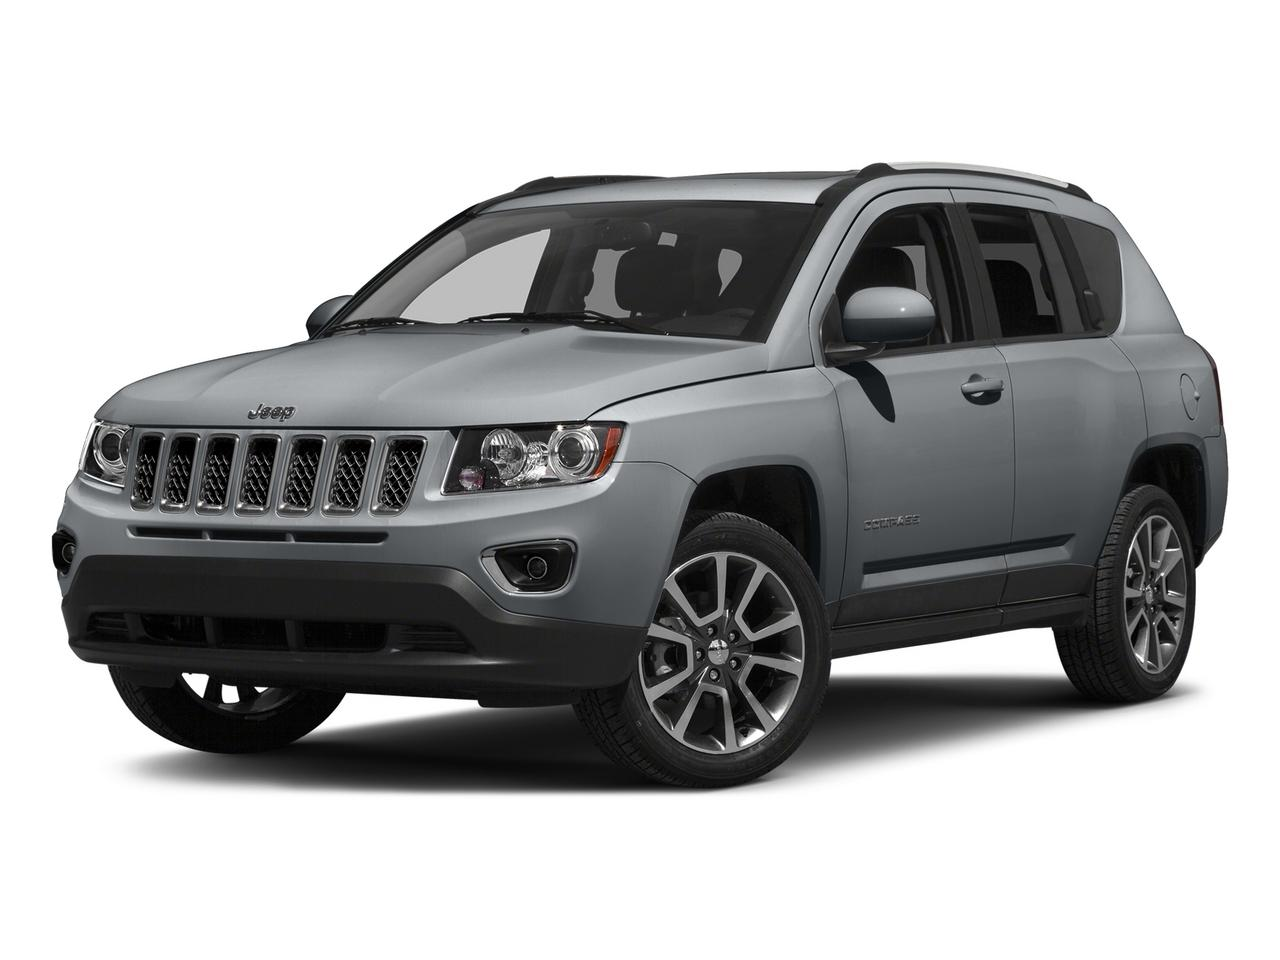 2015 Jeep Compass Vehicle Photo in Killeen, TX 76541